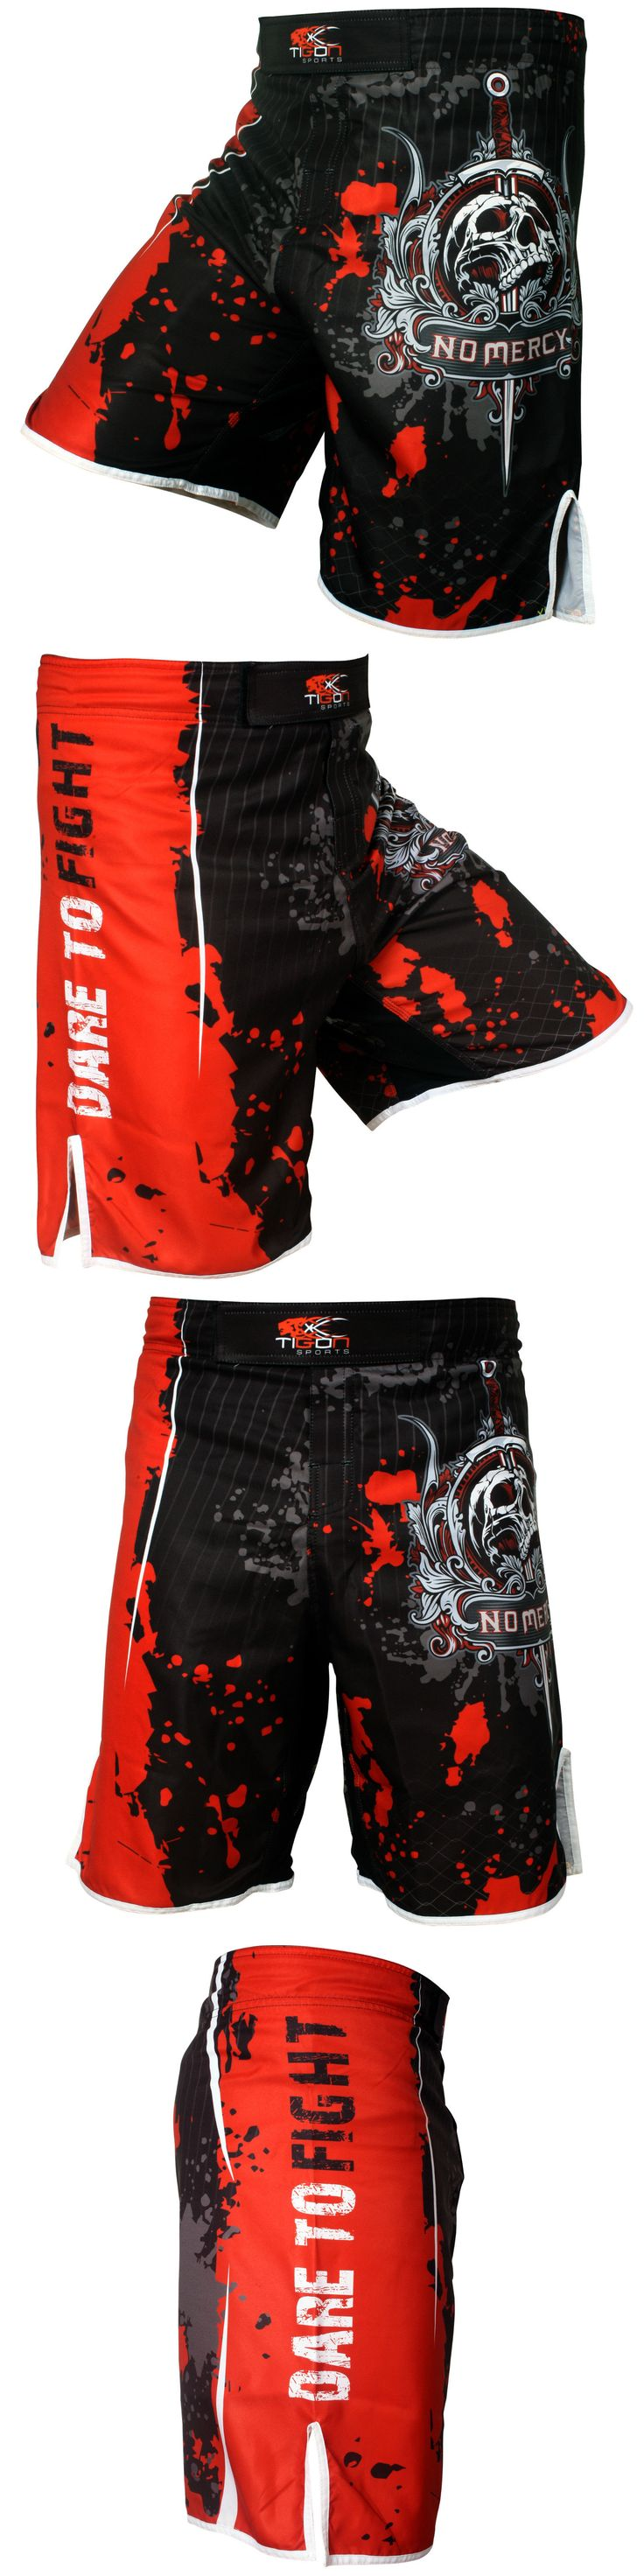 Shorts 73982: Pro Gel Fight Shorts Ufc Mma Grappling Short Kick Boxing Muay Thai Cage Pants -> BUY IT NOW ONLY: $24.99 on eBay!